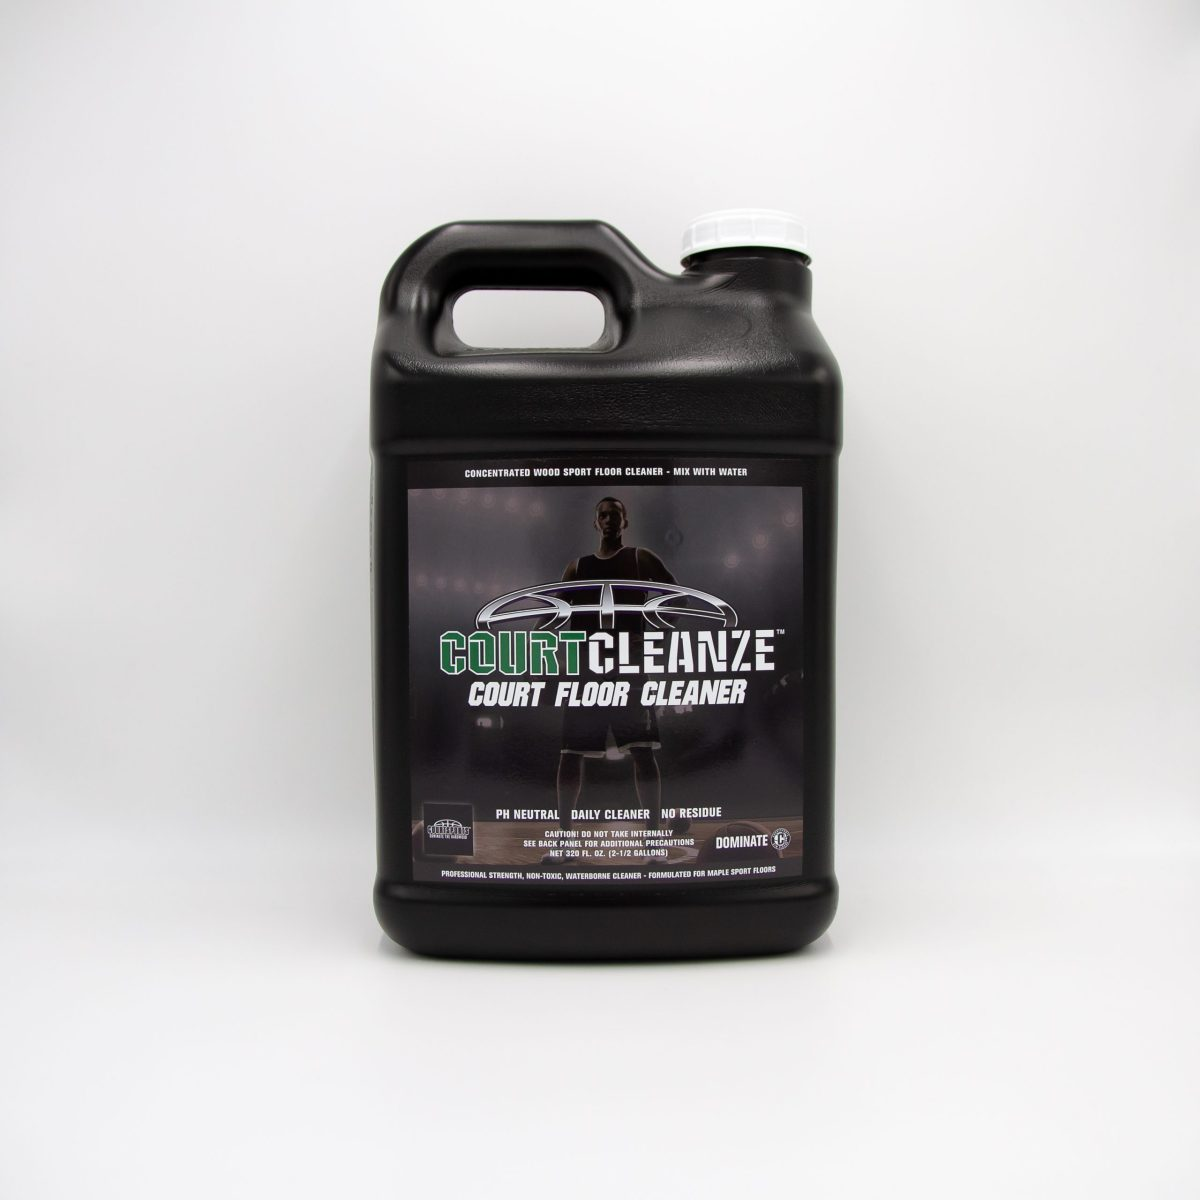 COURTCLEANZE COURT FLOOR CLEANER CONCENTRATE - TO DAMP CLEAN BASKETBALL GYMNASIUM FLOORS - 2.5 GALLONS